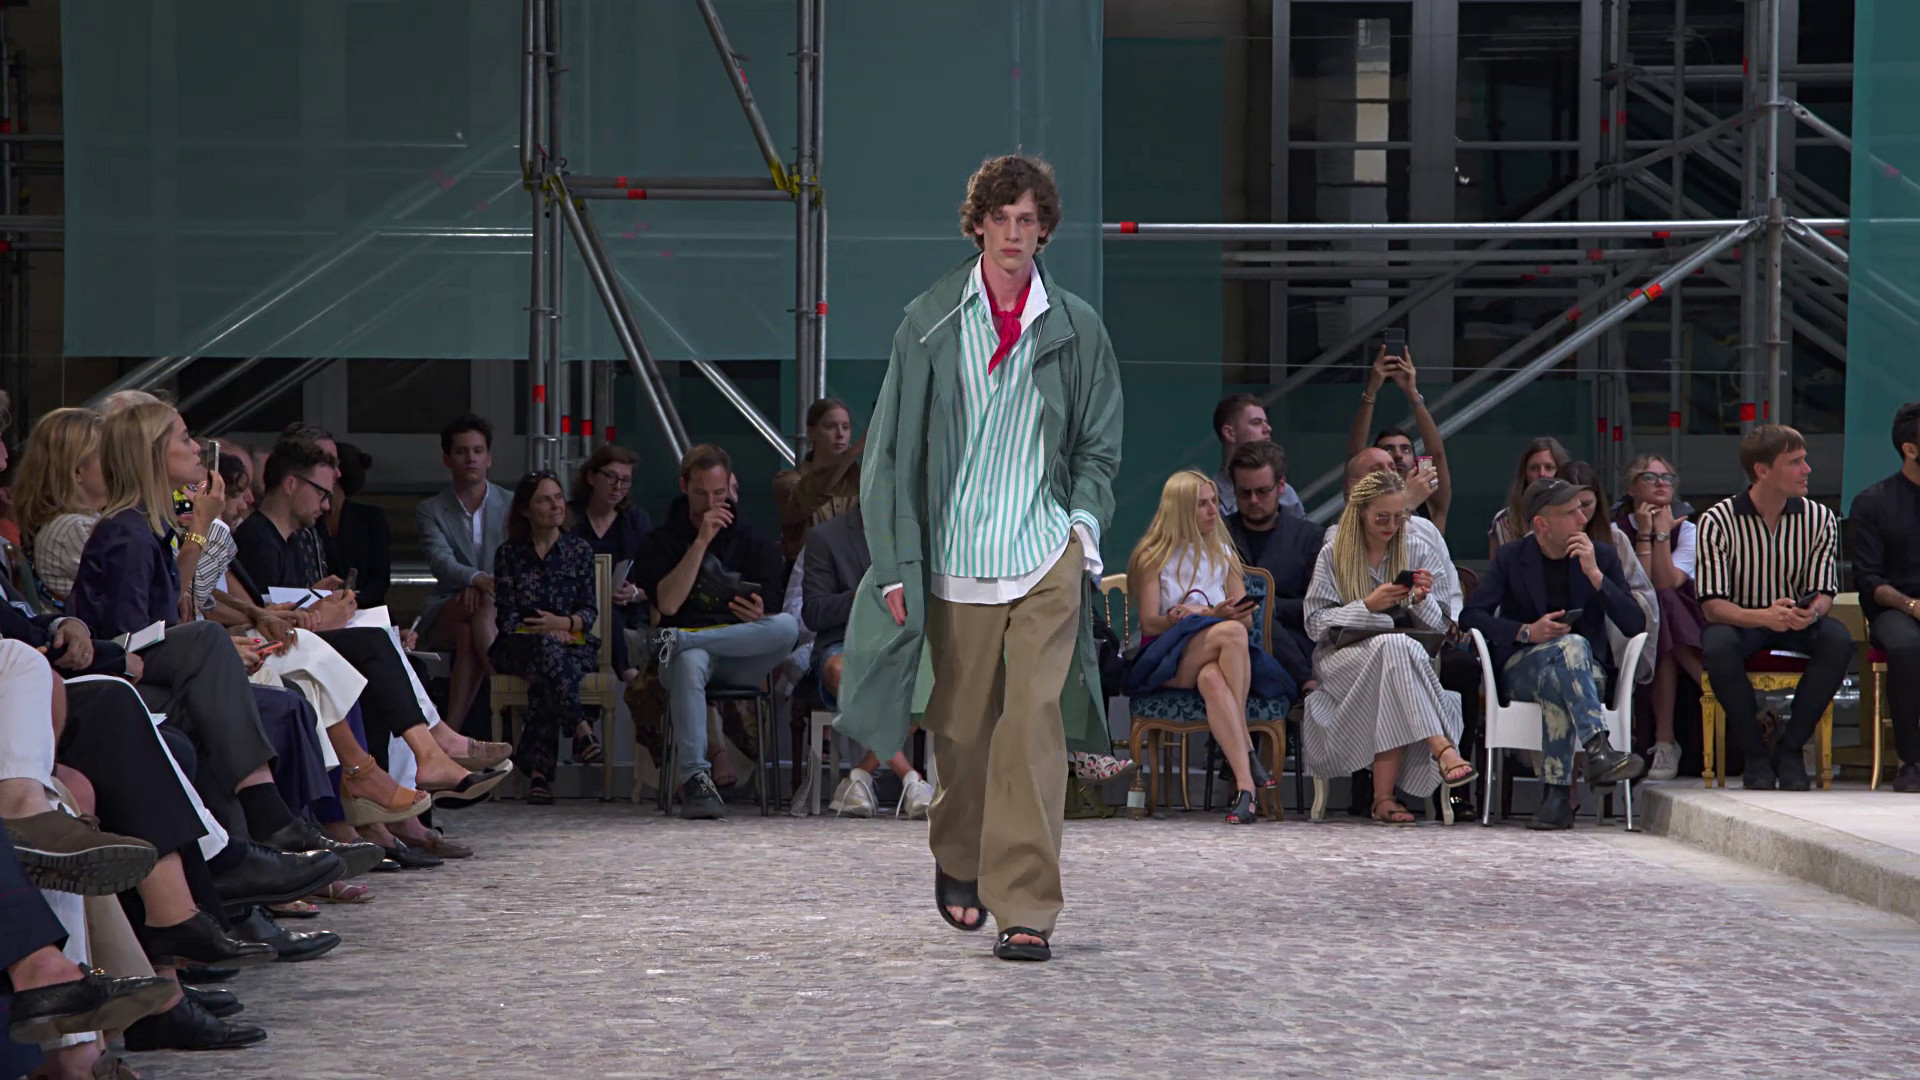 Hermès Spring Summer 2020 Men's Fashion Show - Paris Fashion Week